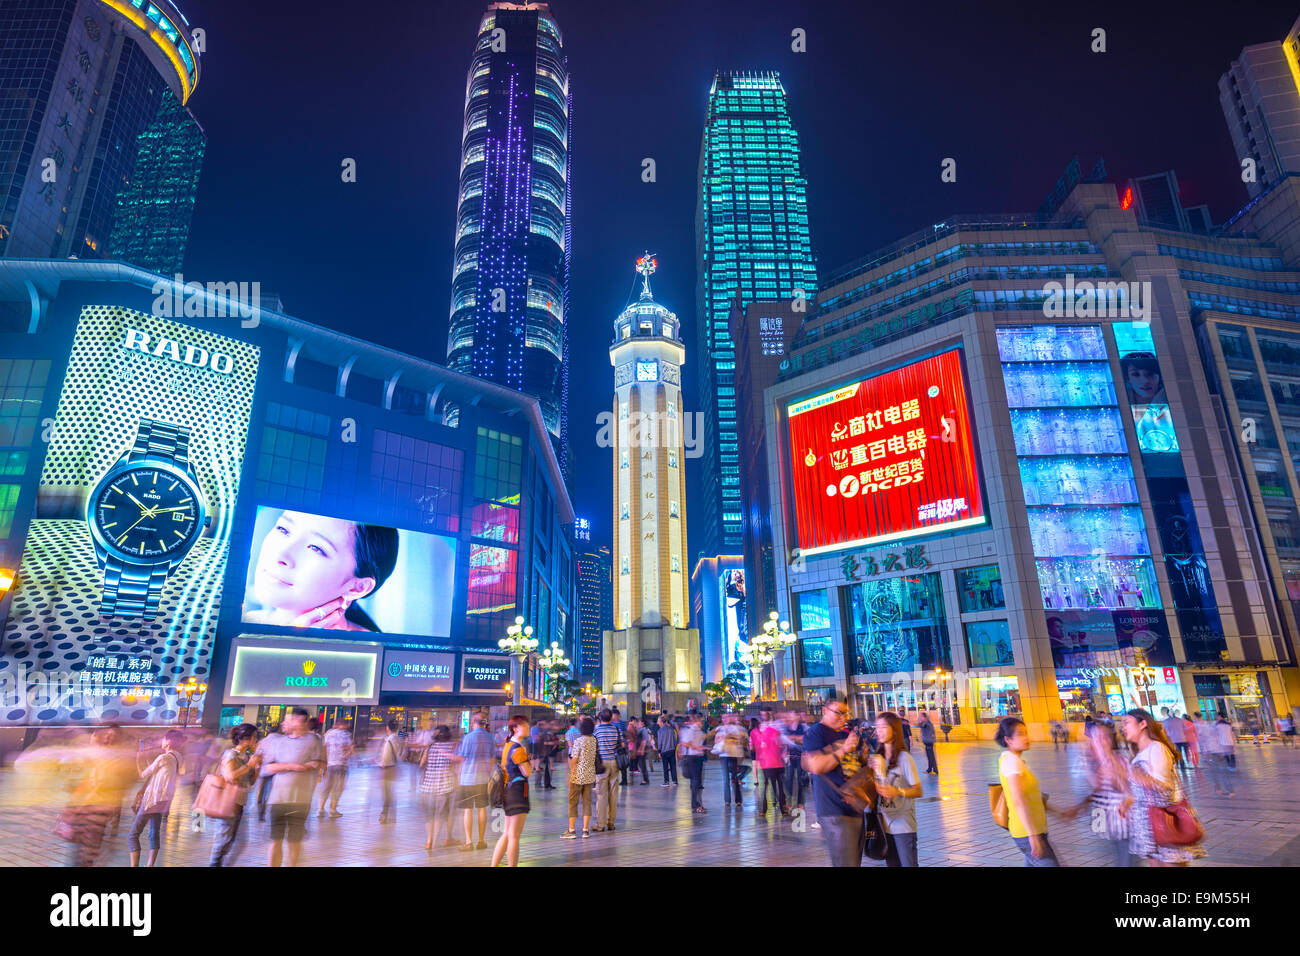 People stroll through the Jiefangbei CBD pedestrian mall of Chongqing, China. - Stock Image